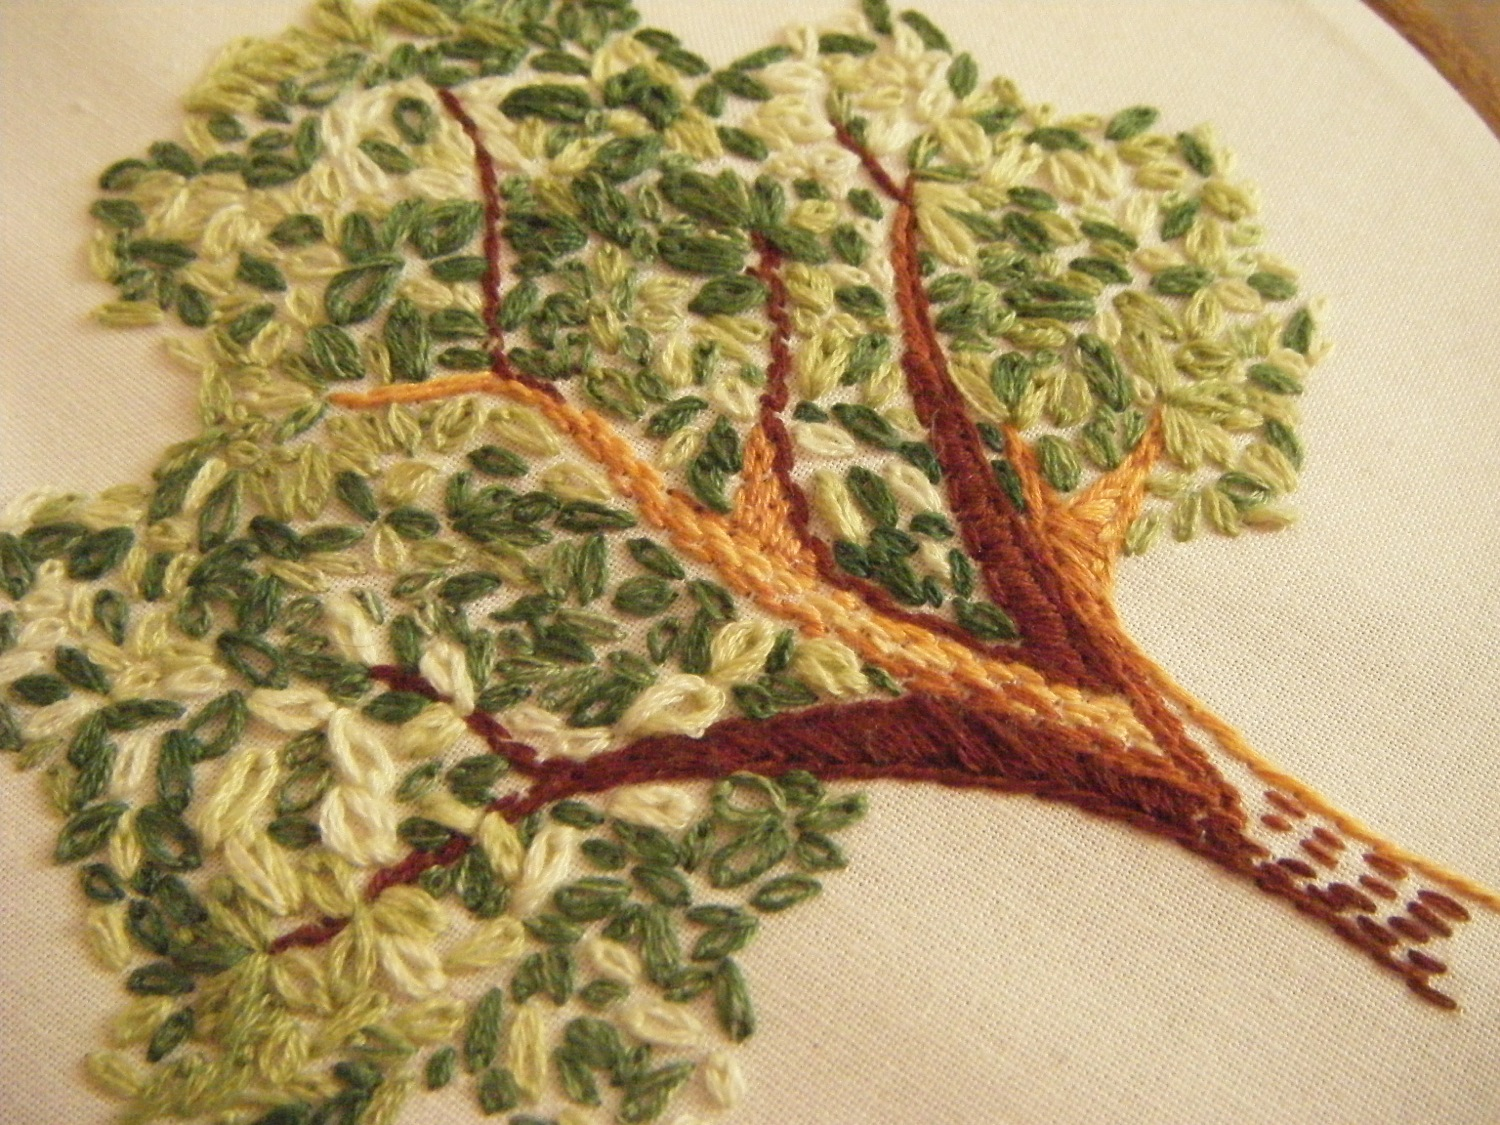 Embroidertree side copy.jpg